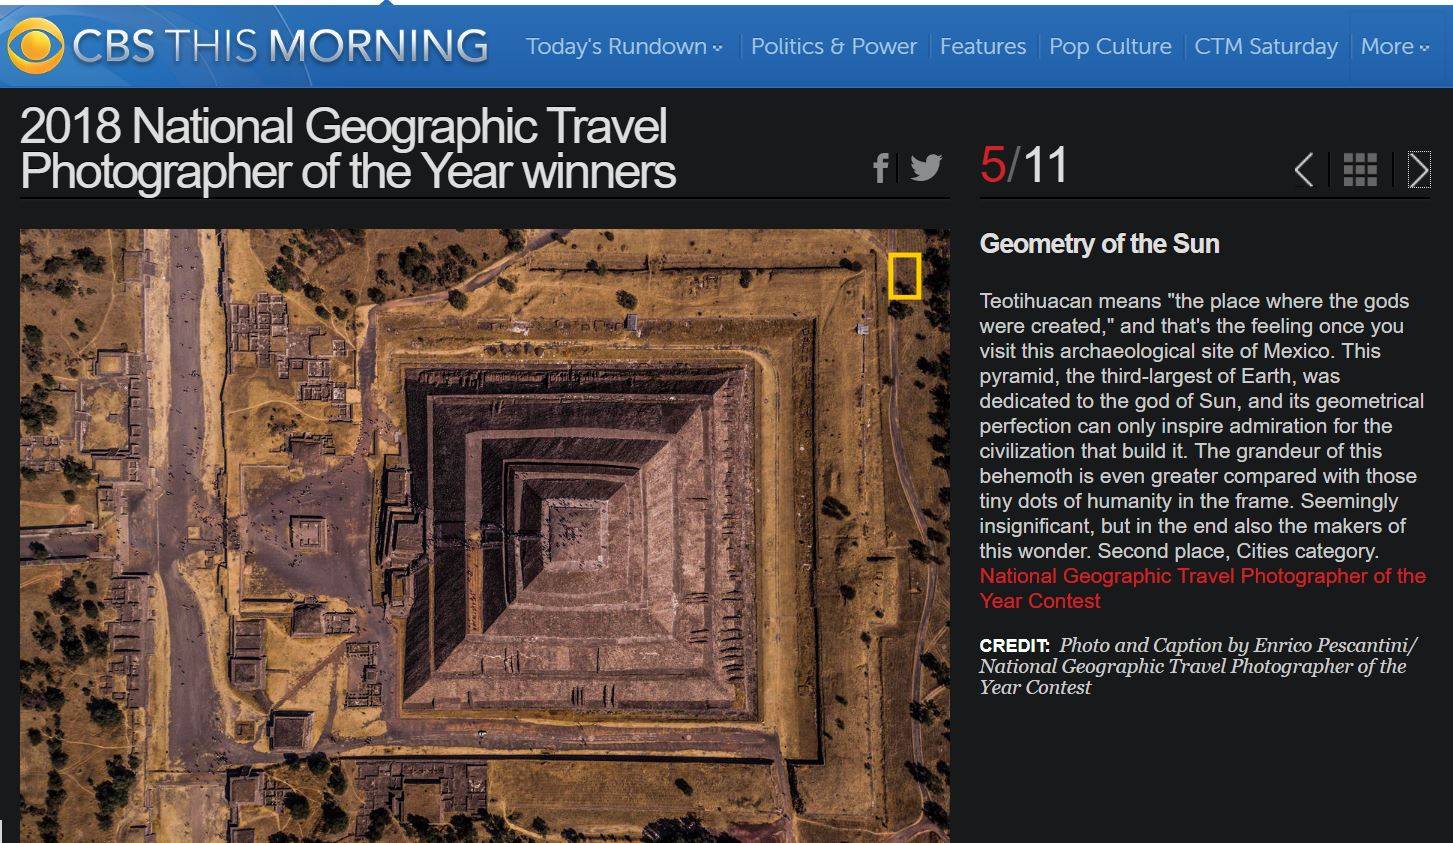 National Geographic Travel Photographer of the year 2018 Cities Winner Geometry of the Sun Enrico Pescantini CBS MORNING